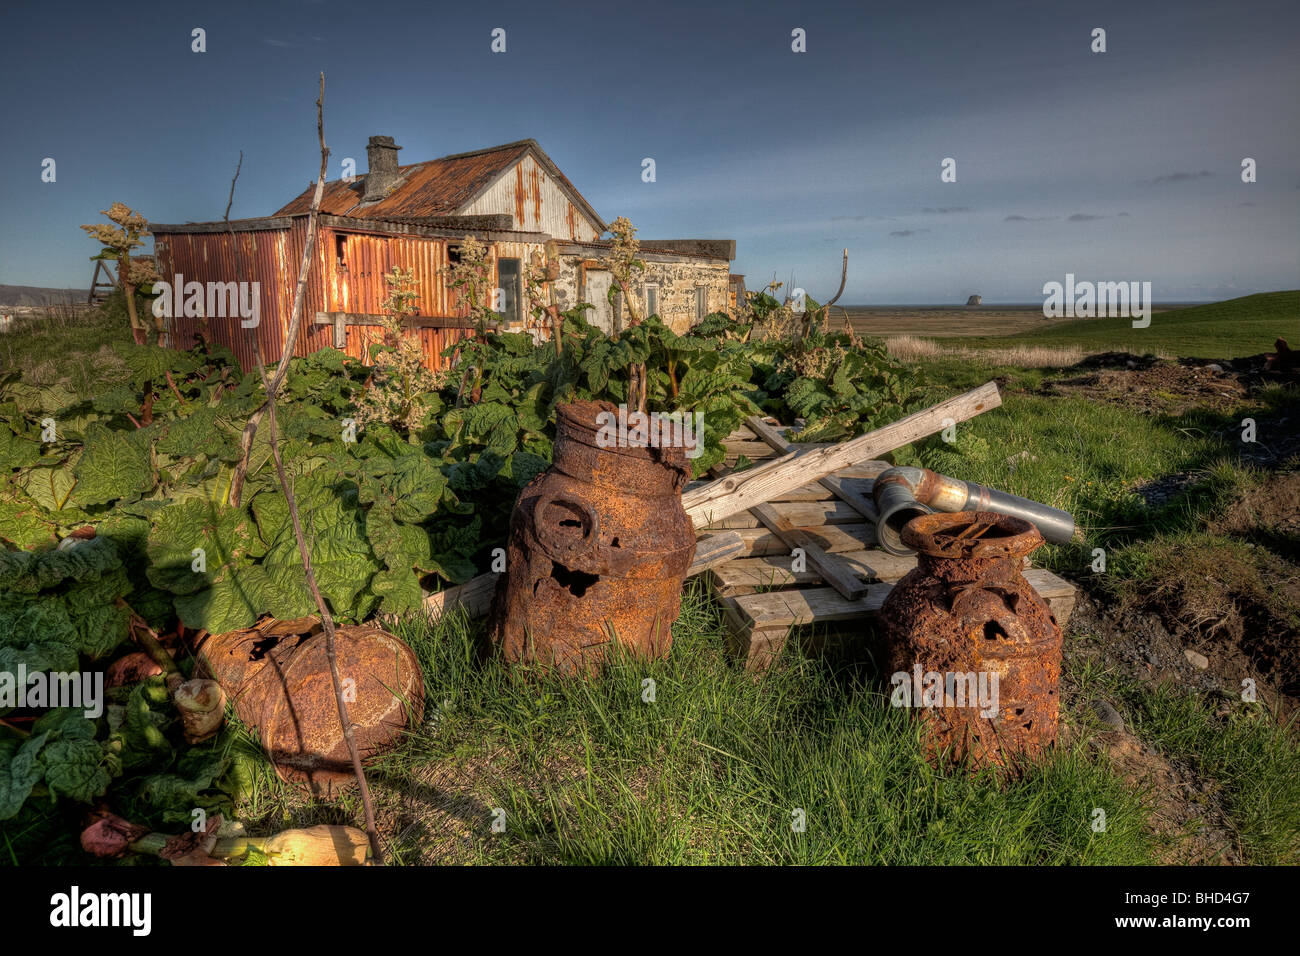 Wild rhubarb growing by old farm equipment , Iceland - Stock Image